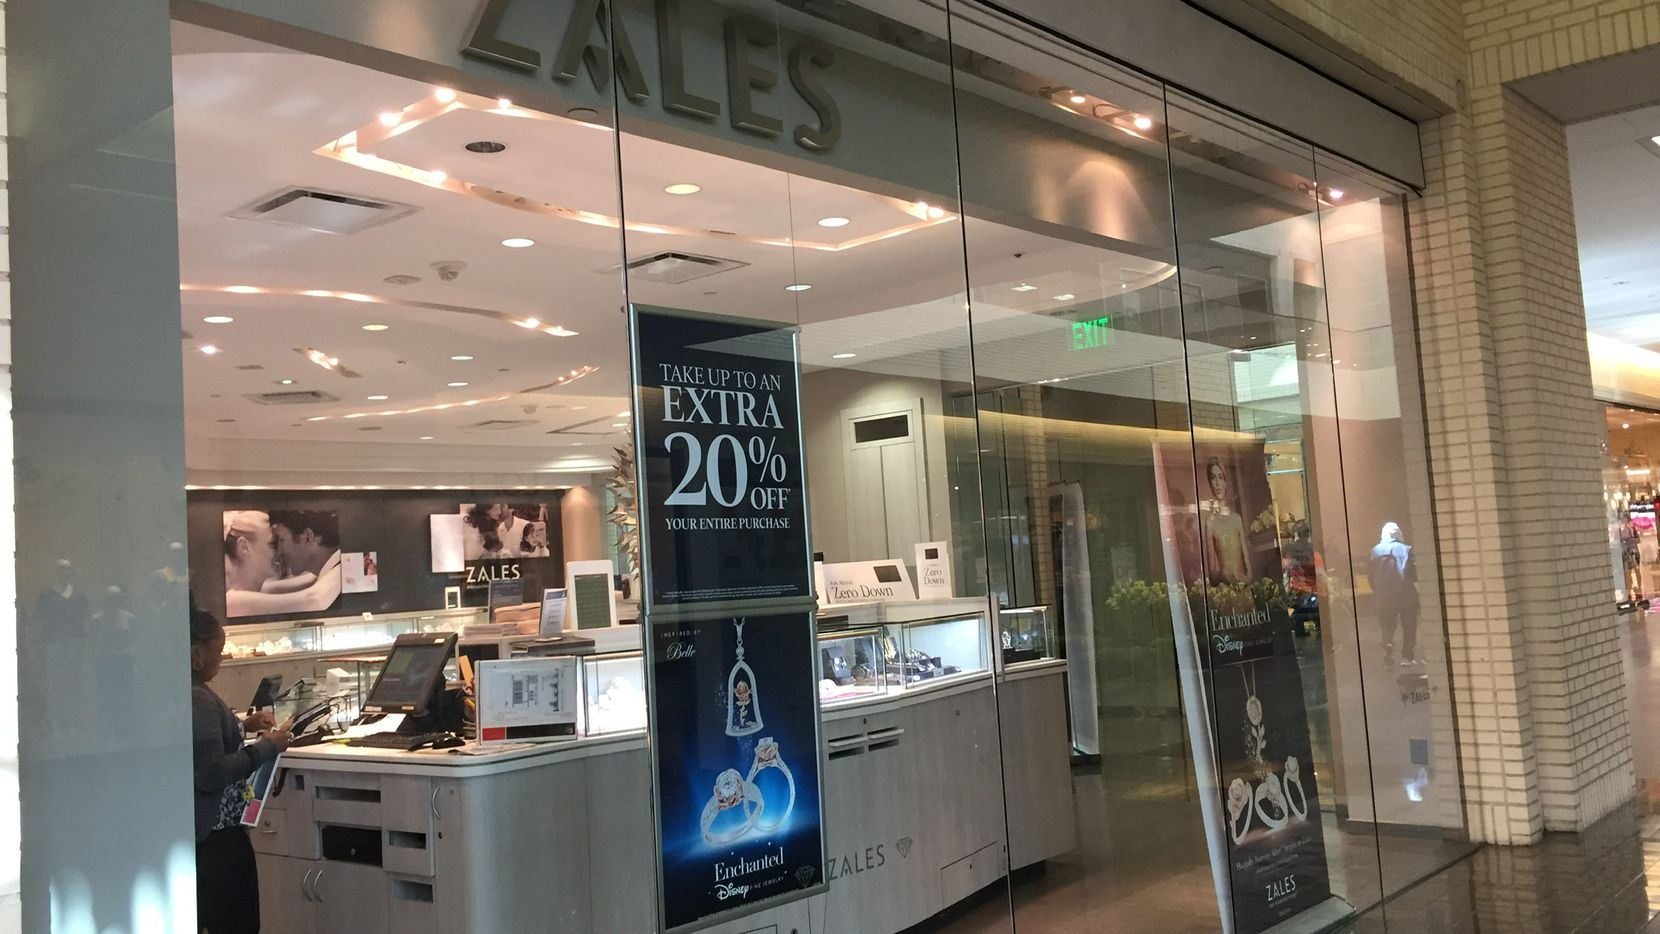 Zales store at NorthPark Center in Dallas.